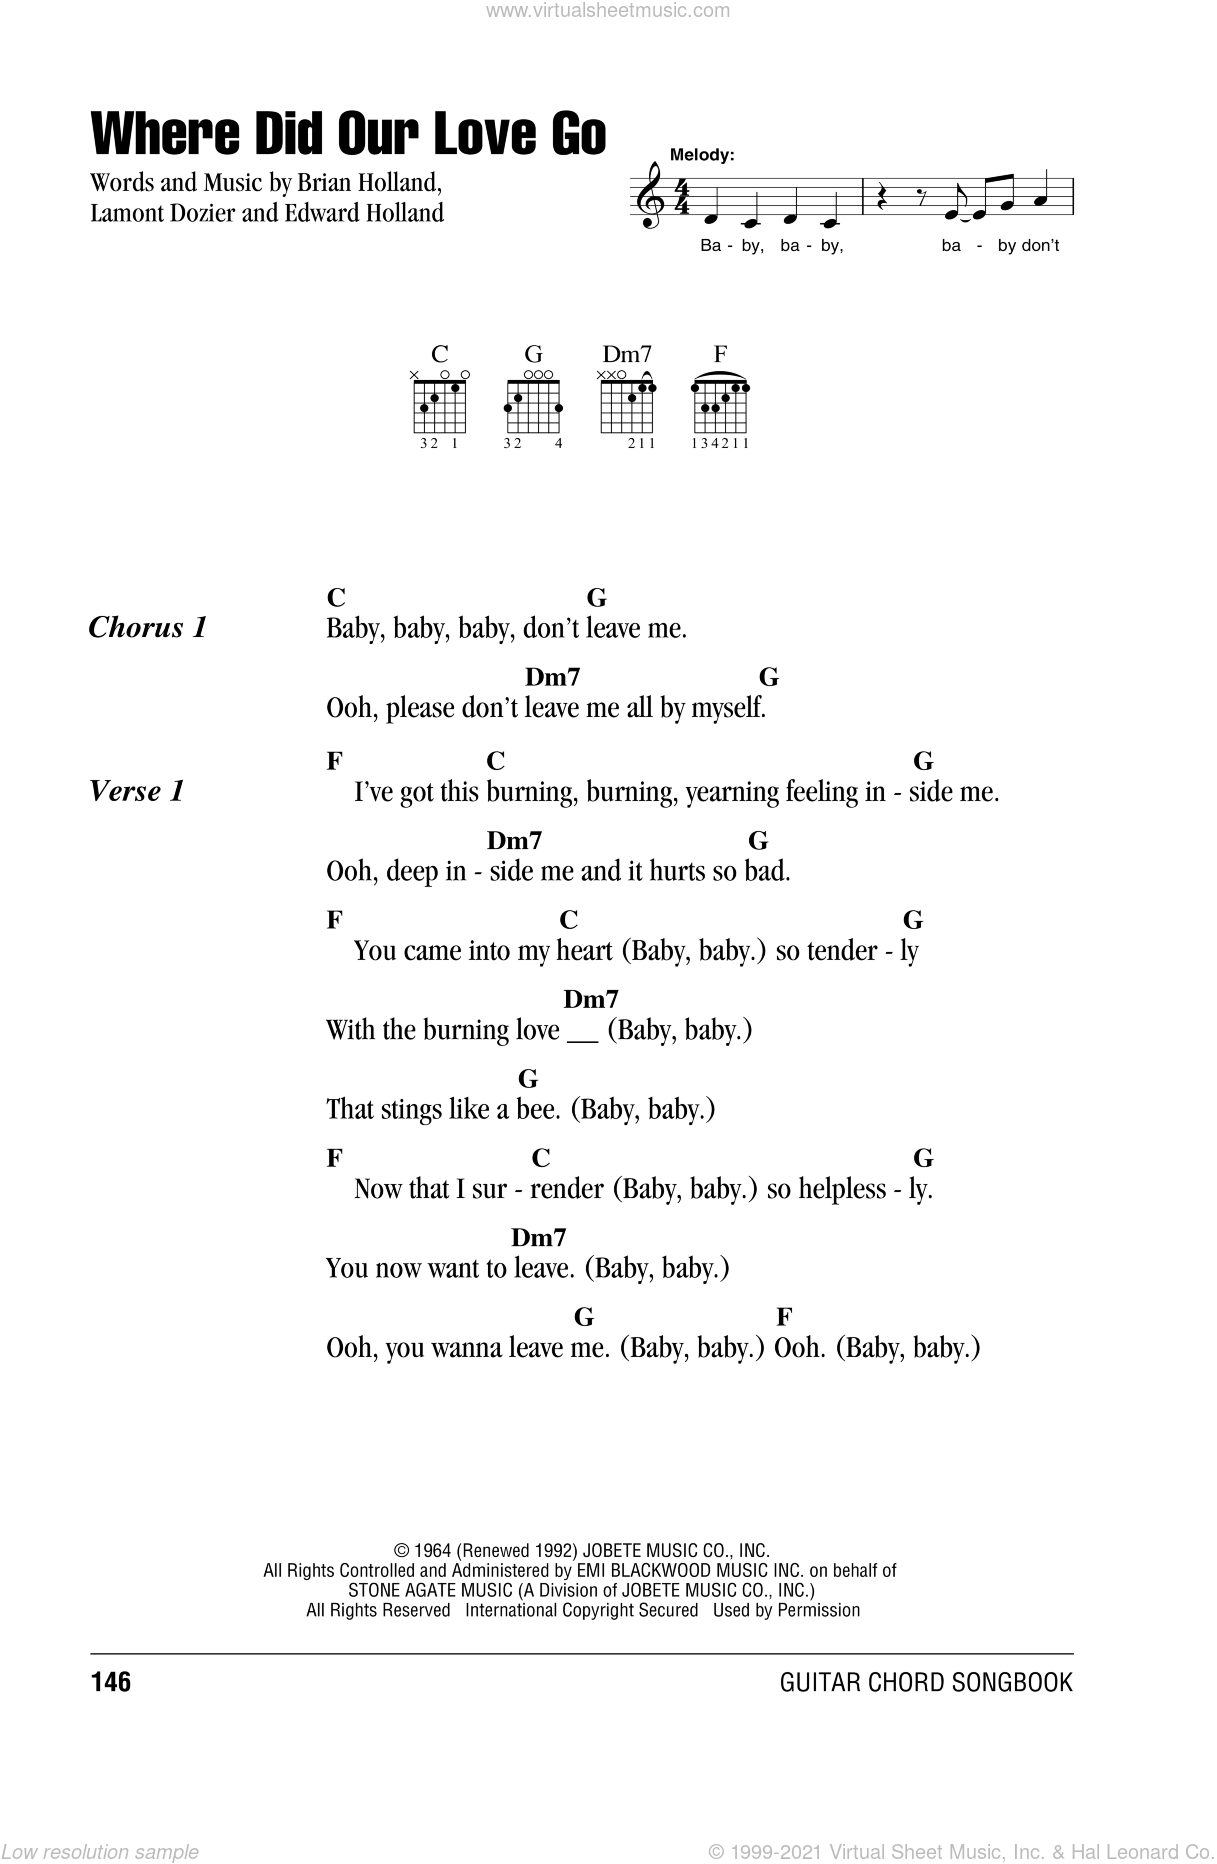 Supremes   Where Did Our Love Go sheet music for guitar chords